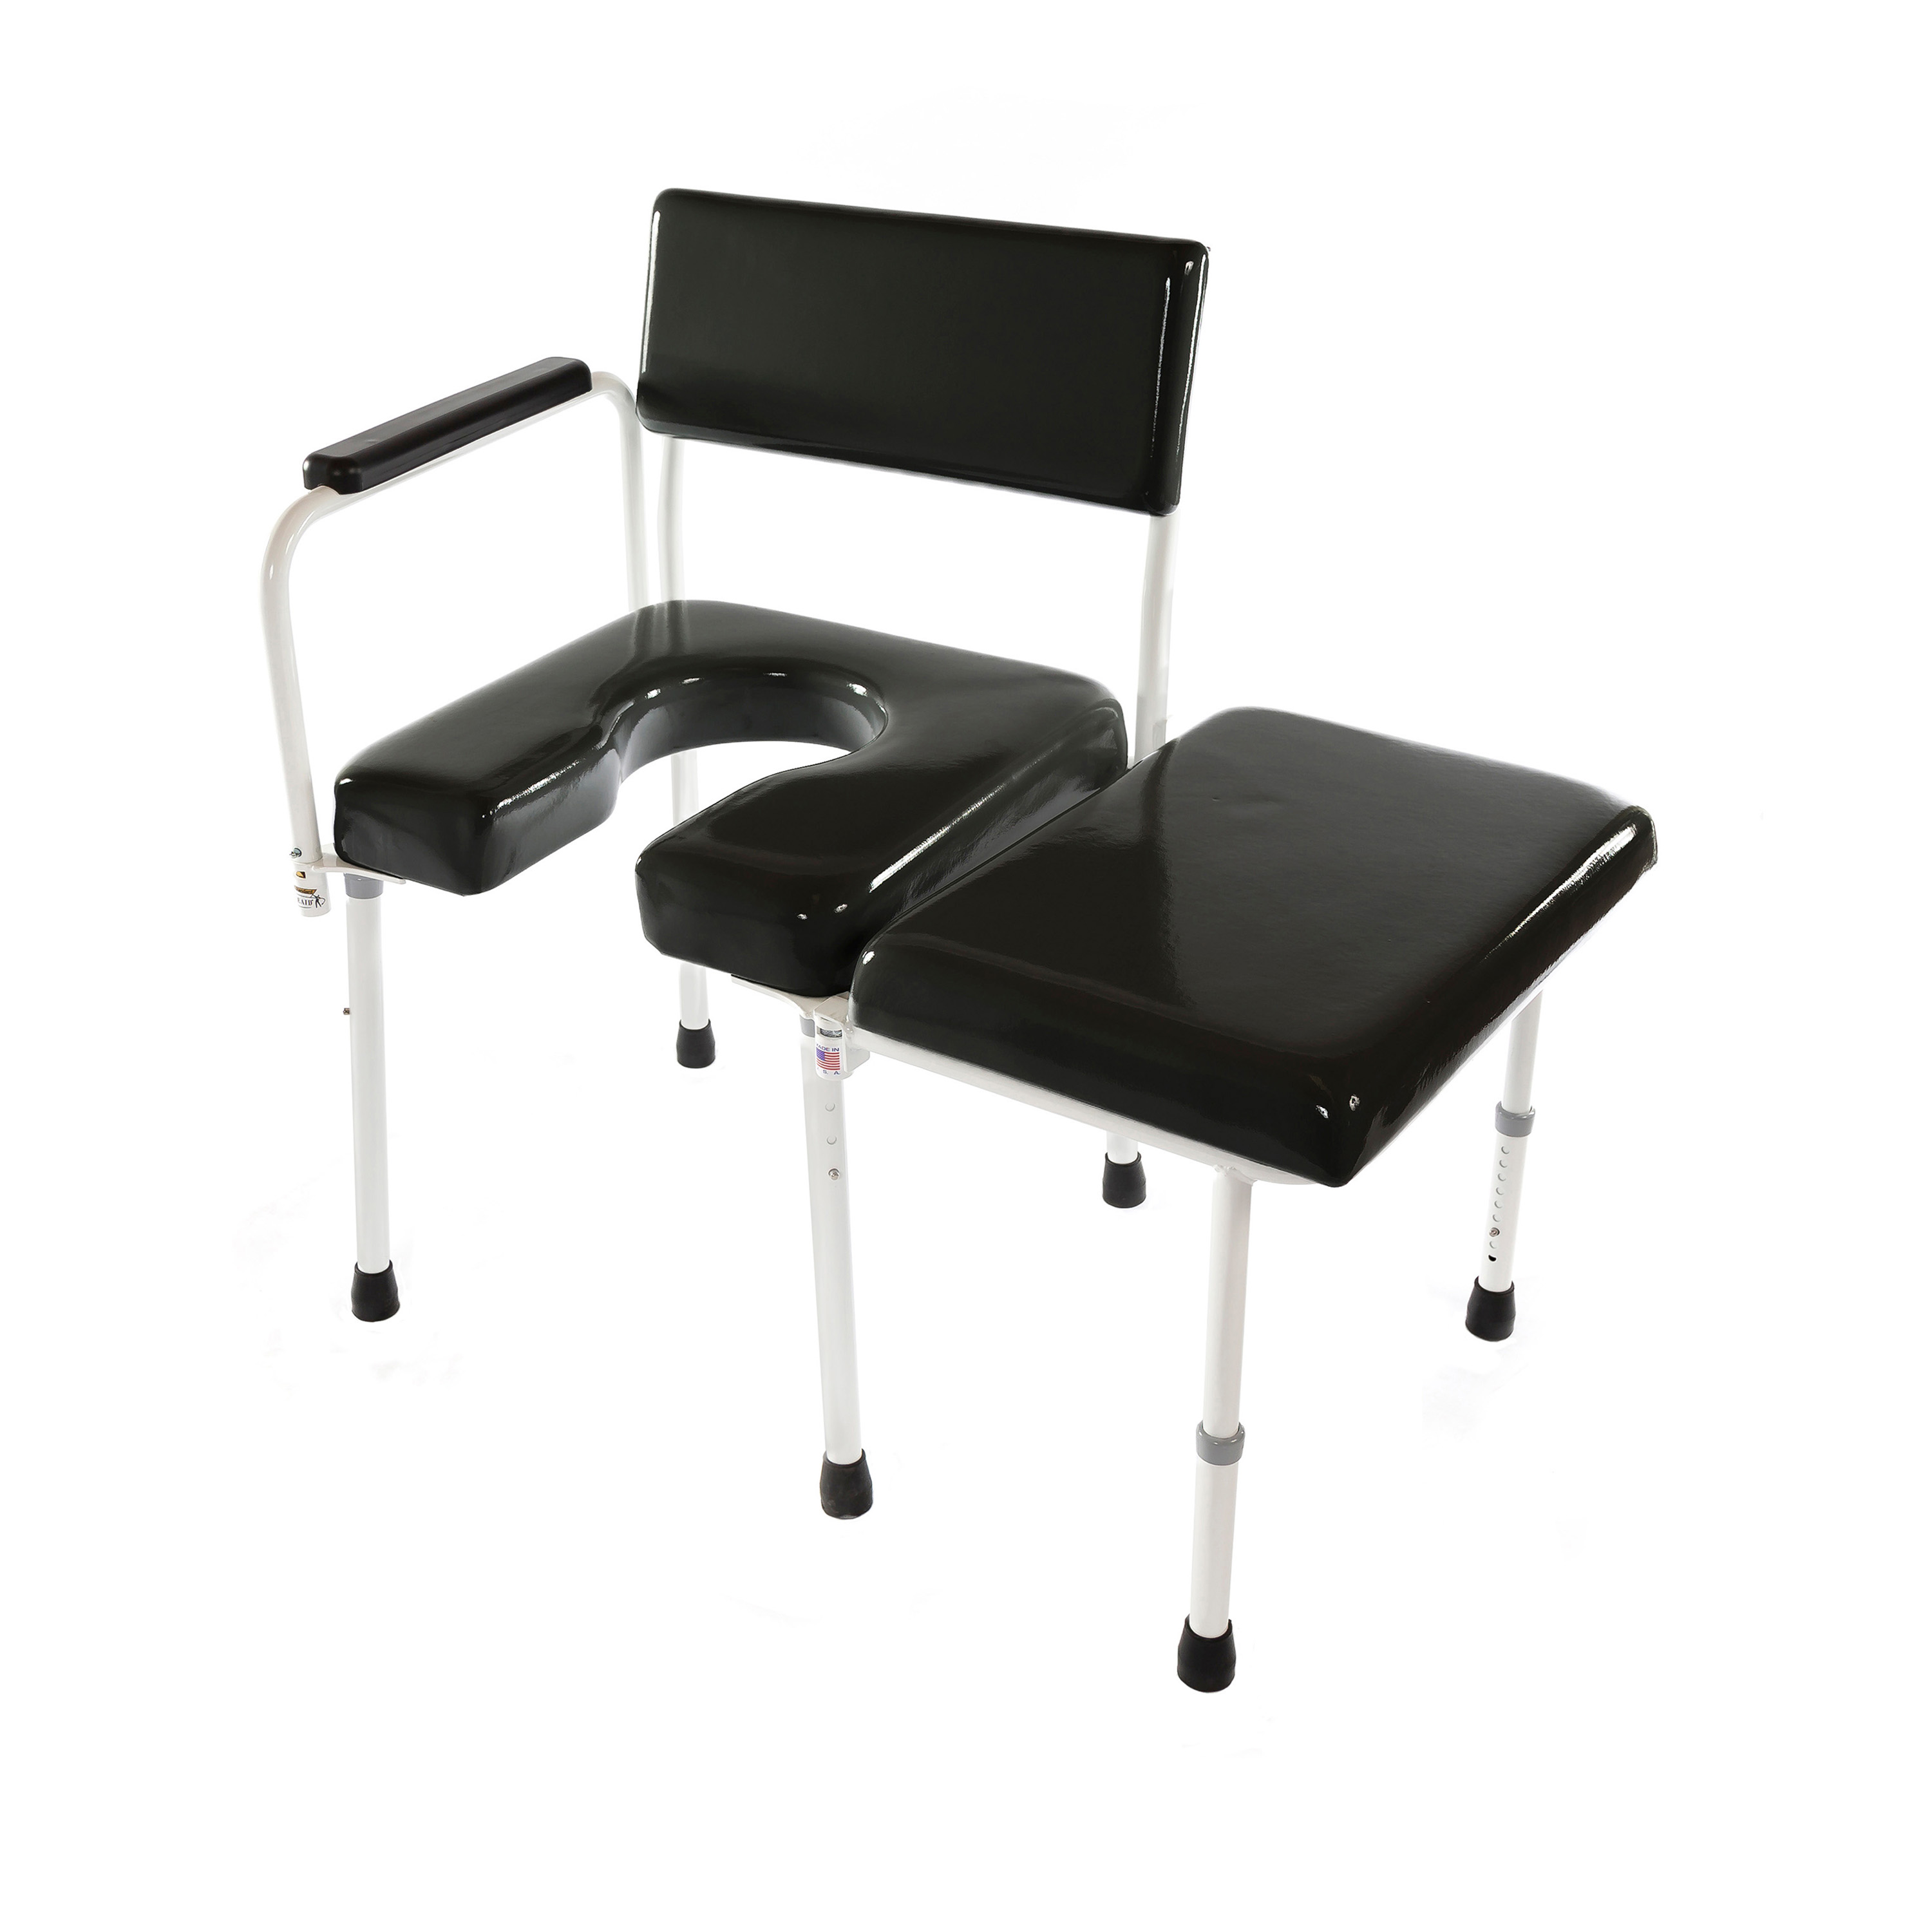 Phenomenal Activeaid 202 Bathroom Assist Chair Short Links Chair Design For Home Short Linksinfo